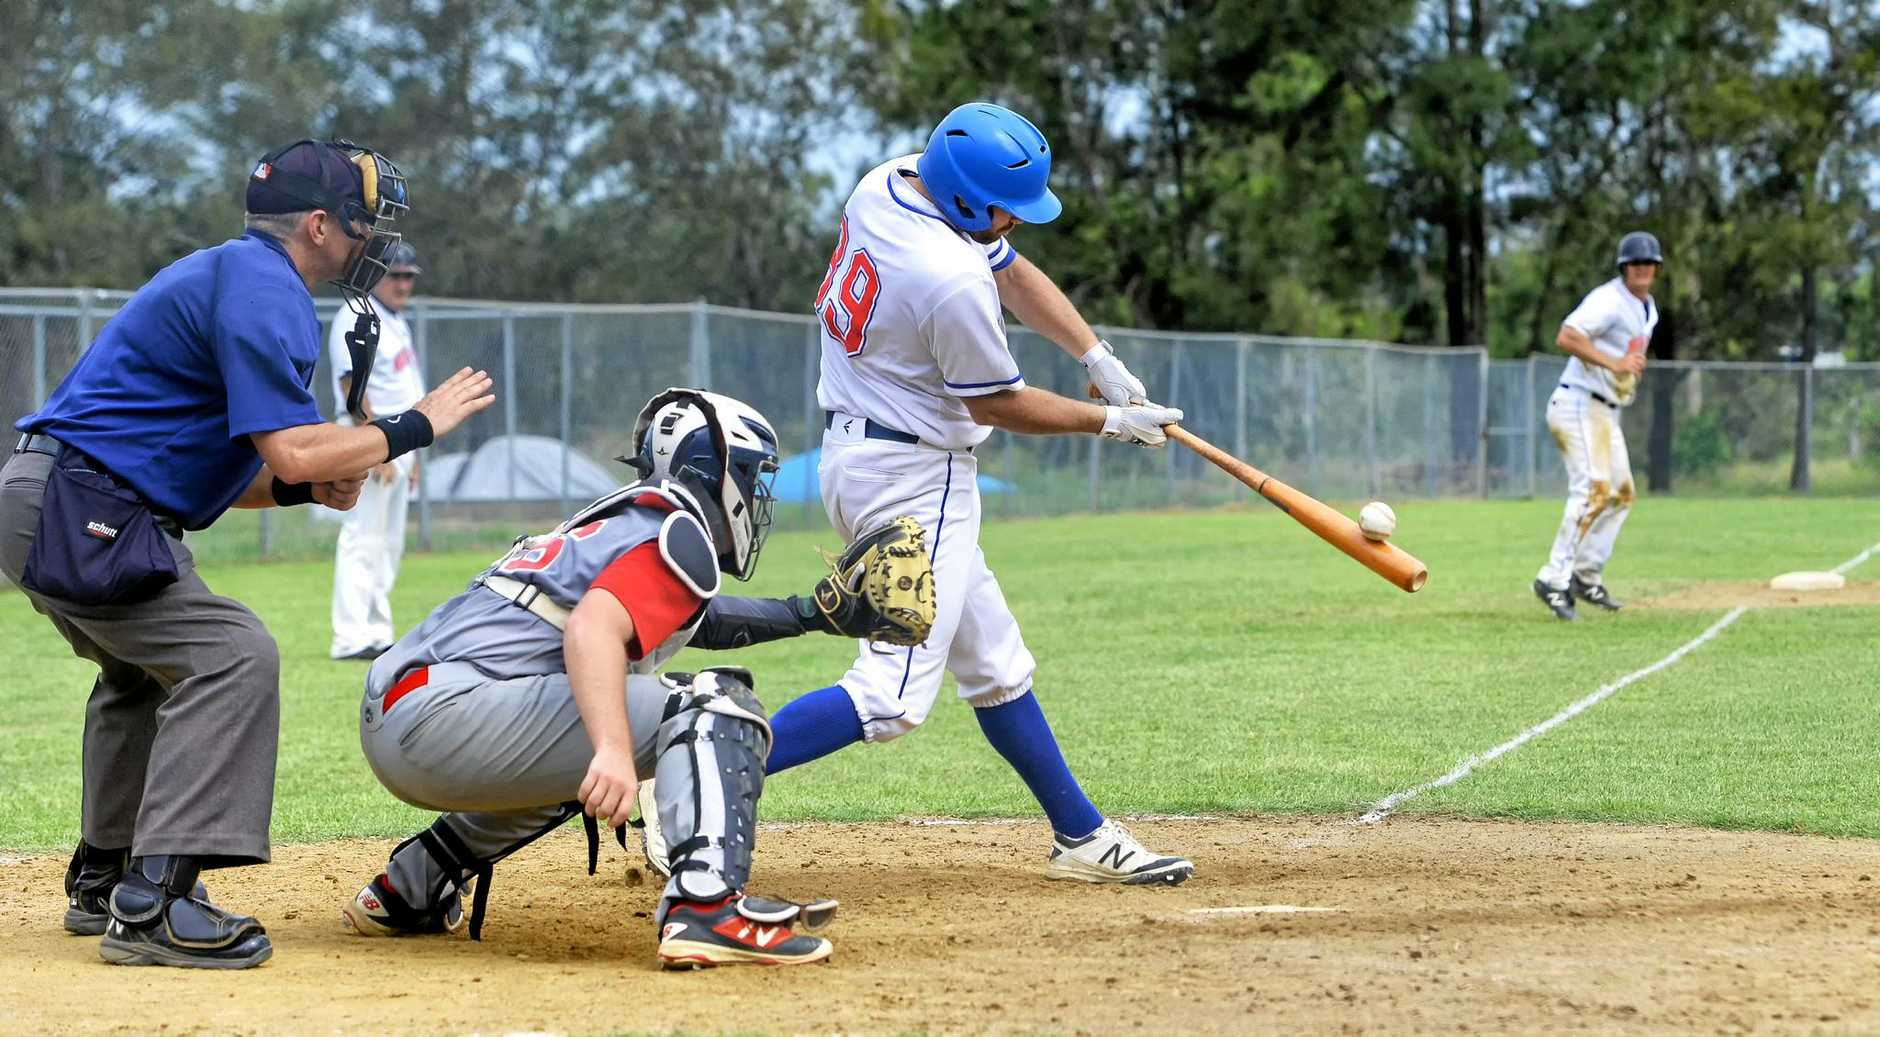 A Musketeers batter feels bat on balls during their match with the Redcliffe Padres on Sunday.